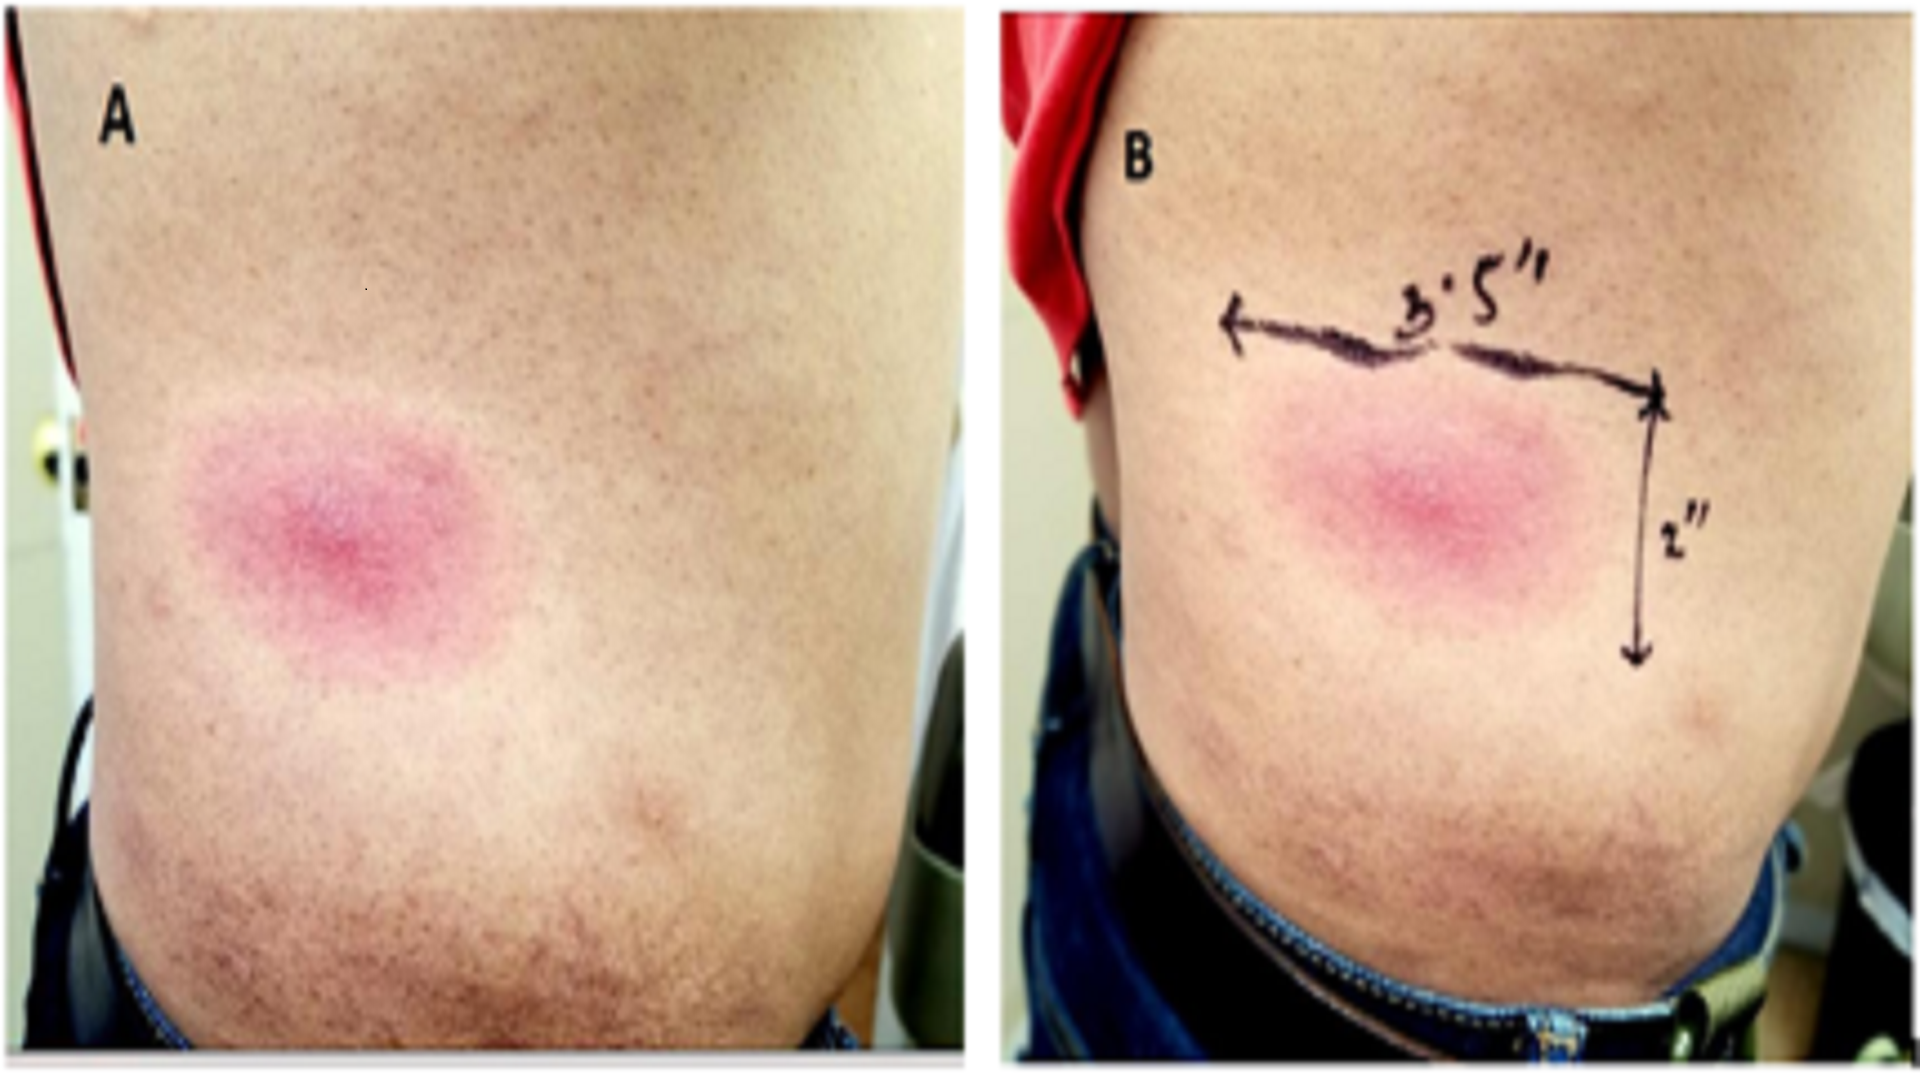 Erythema Migrans: Diagnostic Clue or Criteria for Lyme disease?